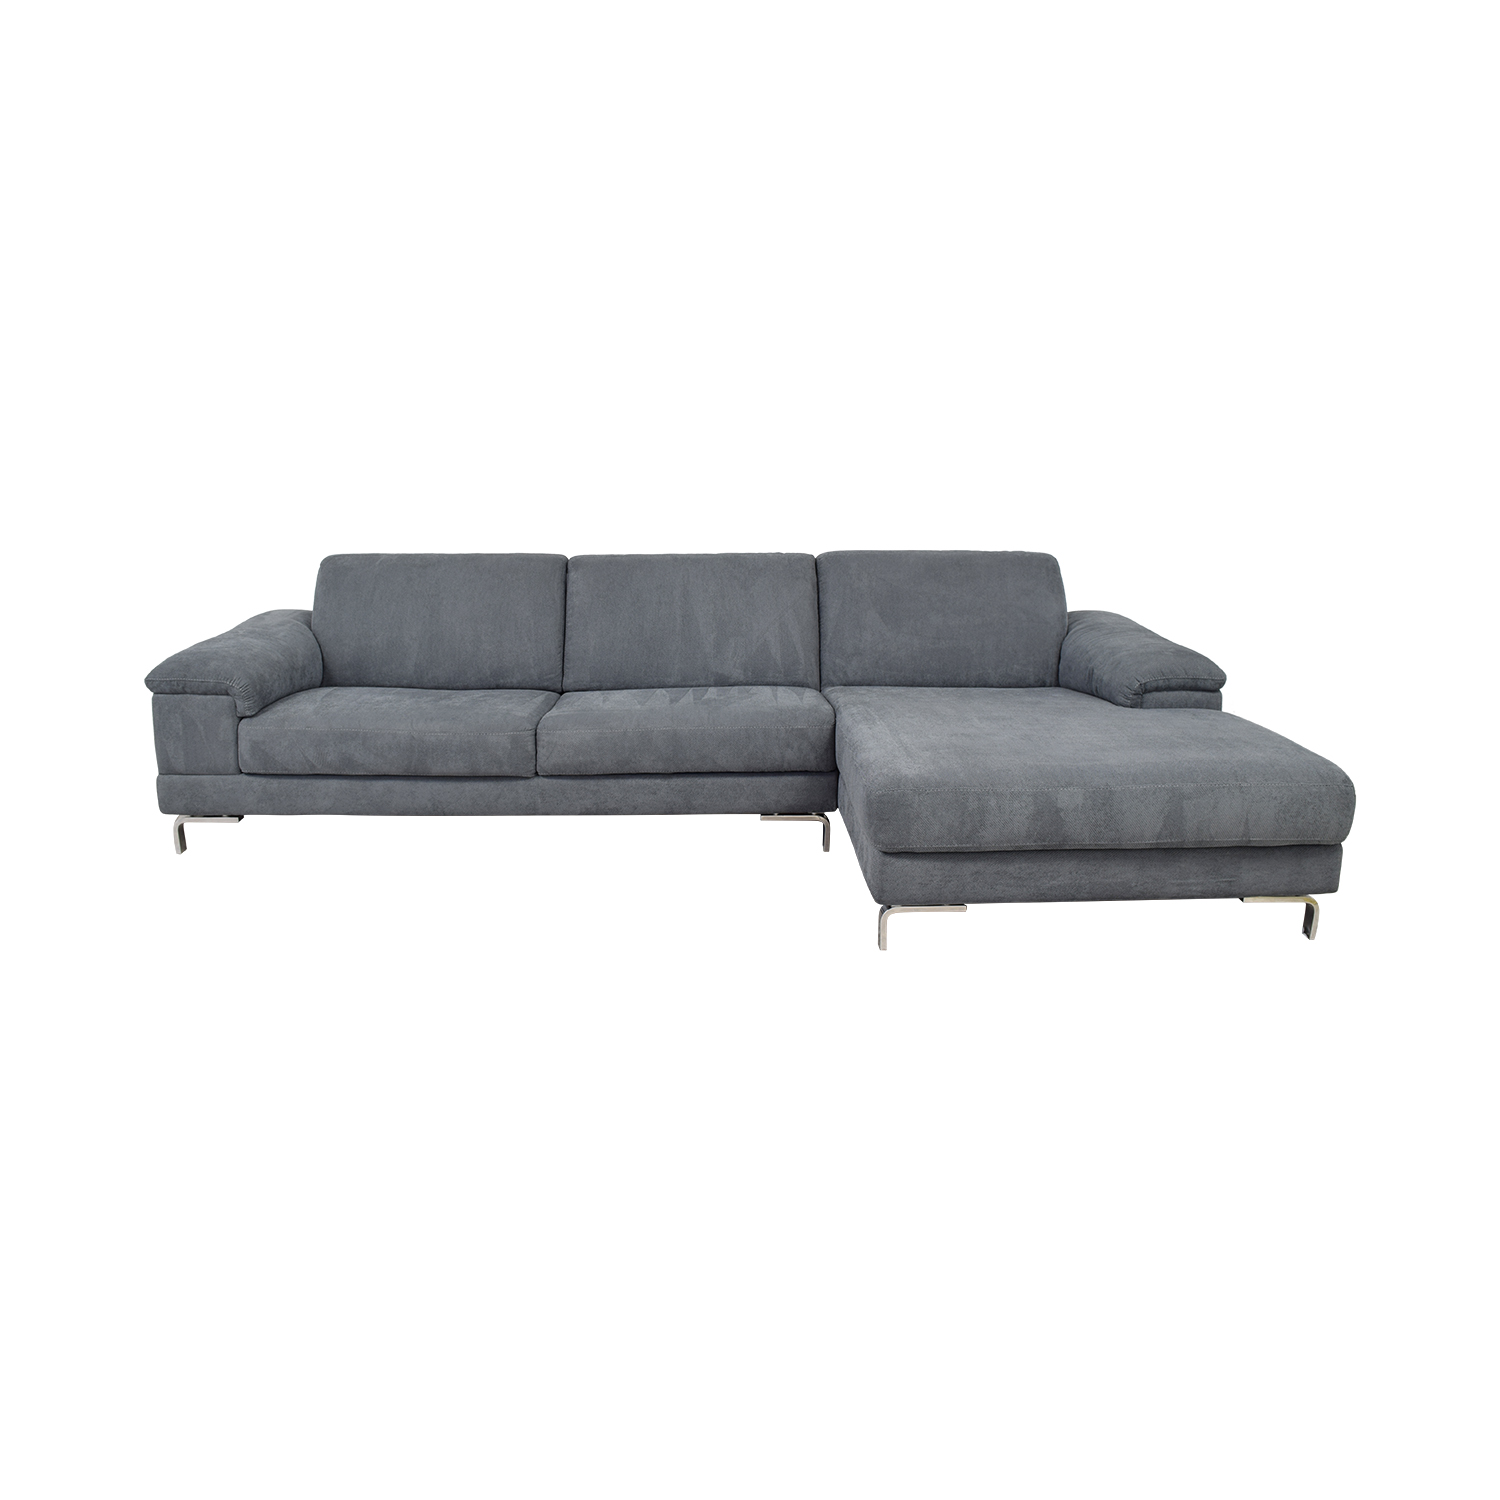 62% OFF   Bloomingdaleu0027s Bloomingdaleu0027s Grey Italian Fabric Chaise  Sectional / Sofas